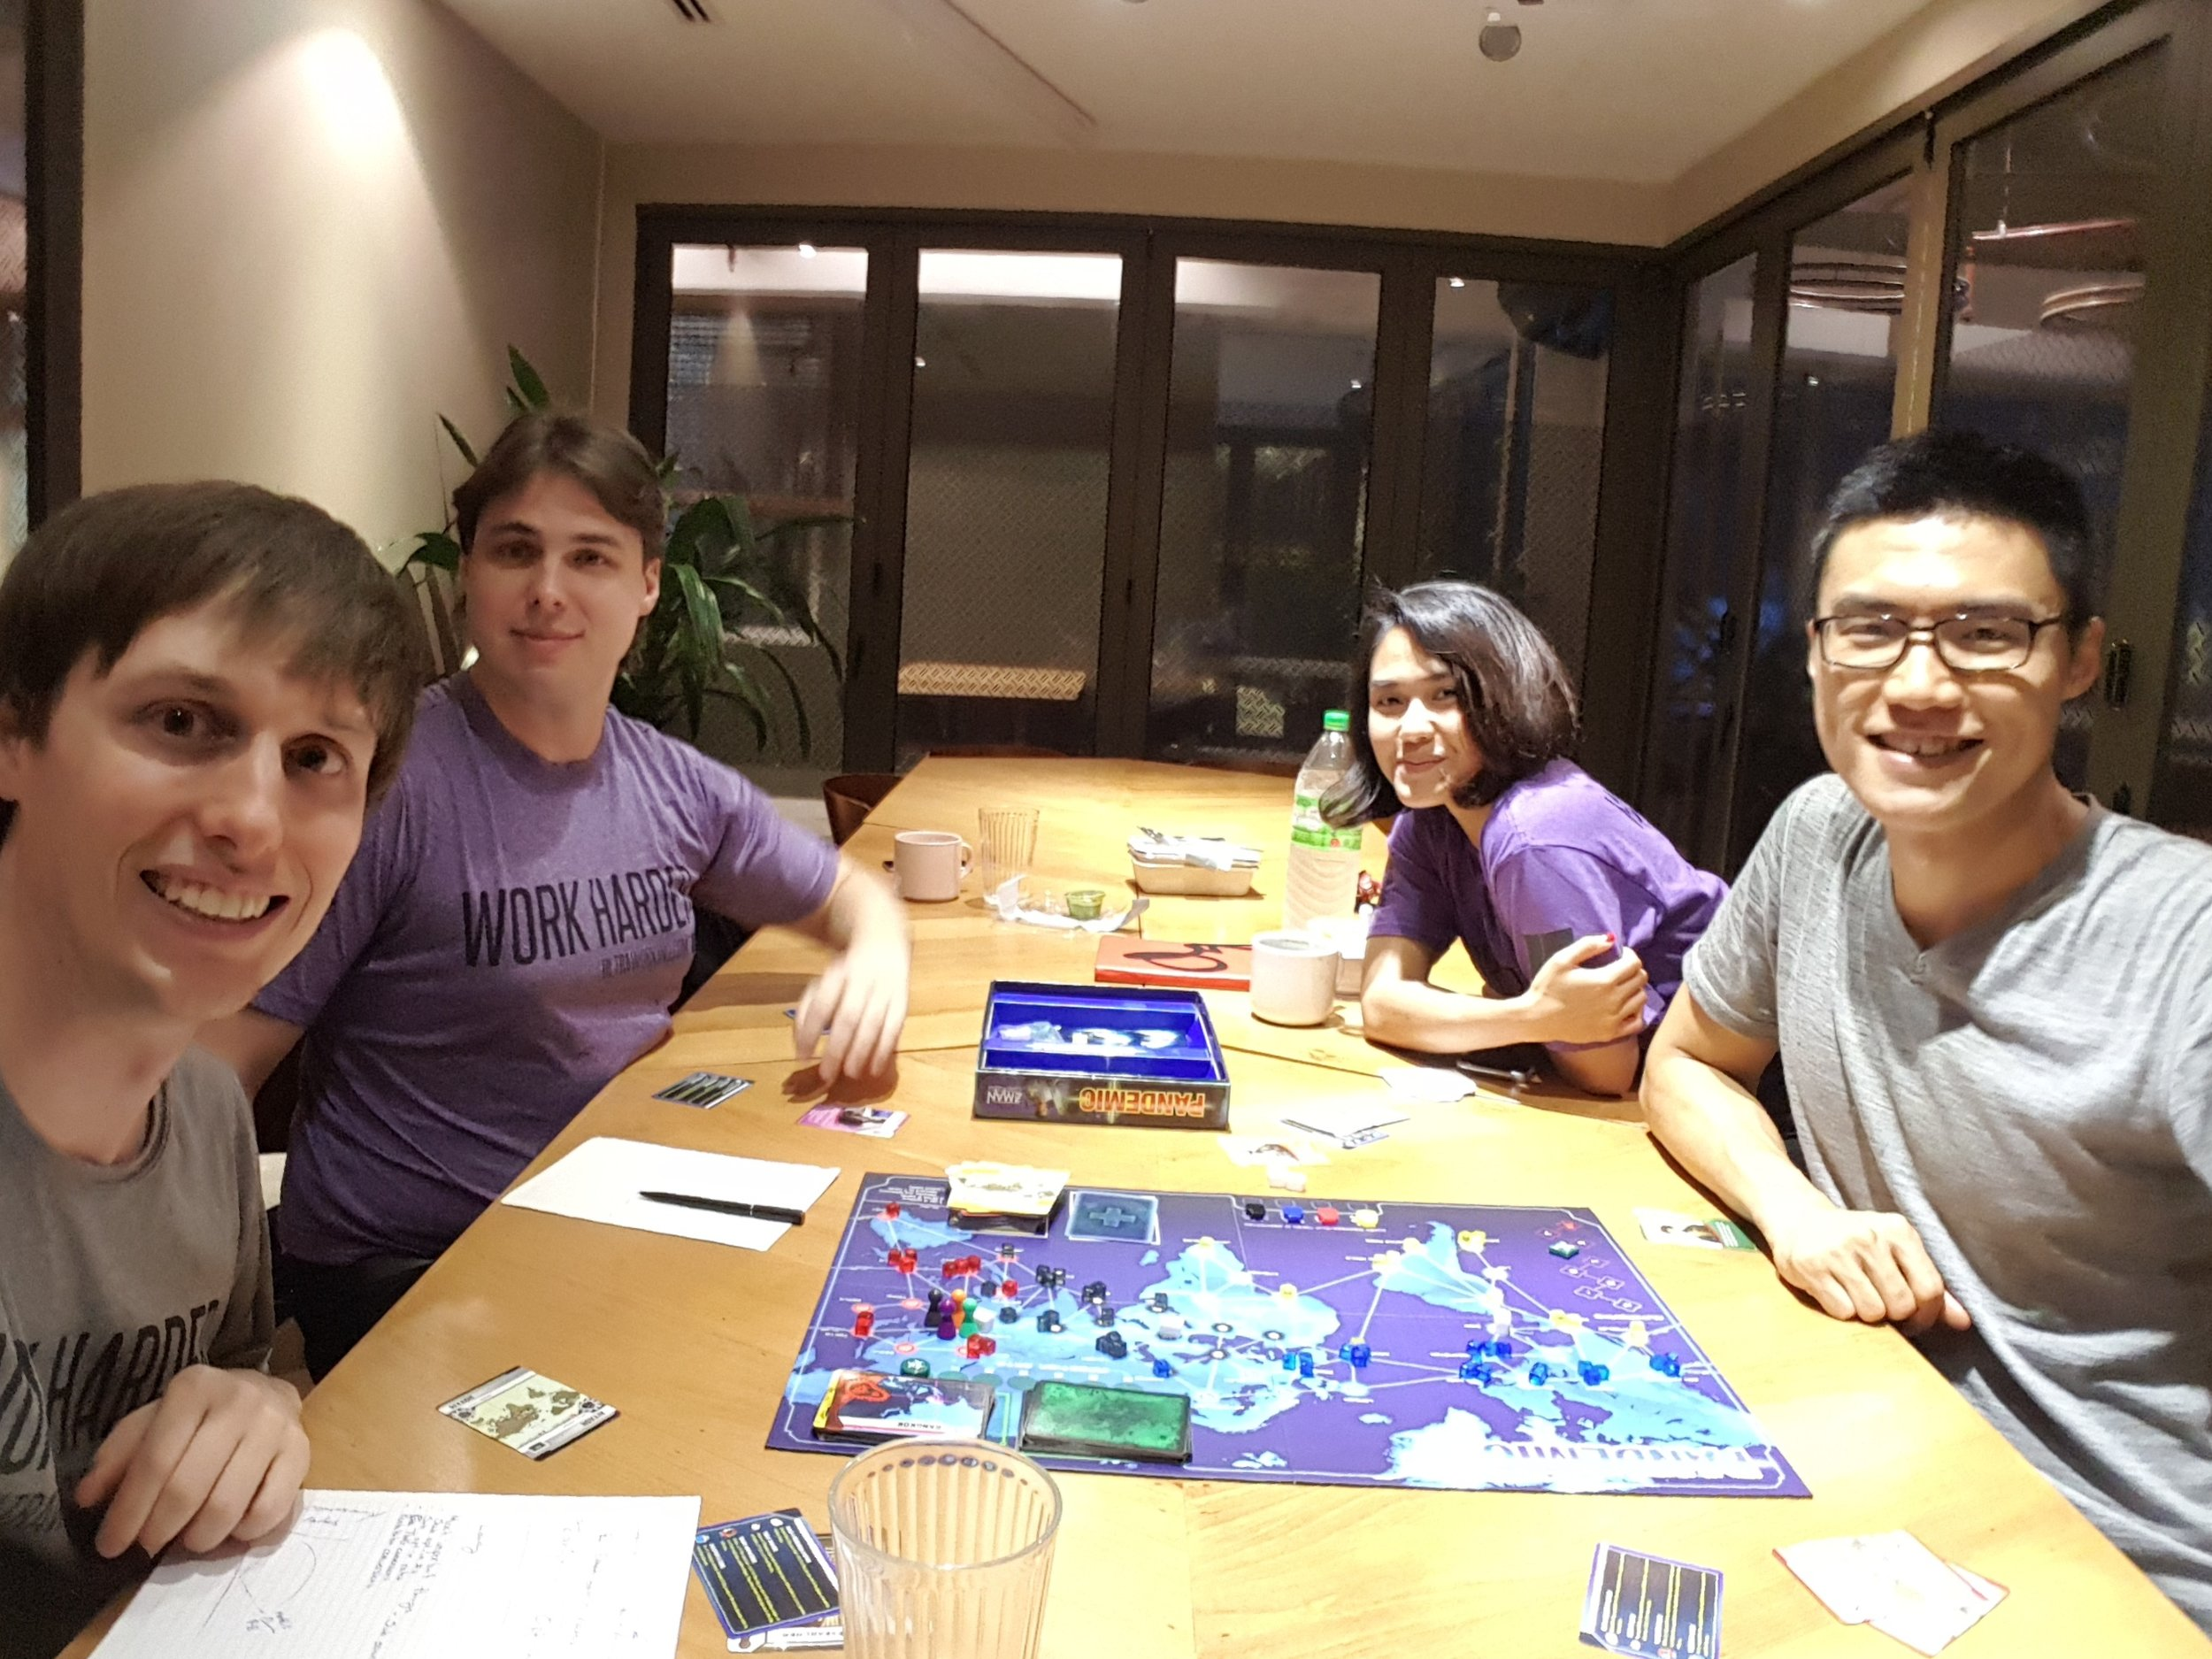 We're also super into boardgames after hours. We would be 1,000% up for a show about boardgames. Seriously.